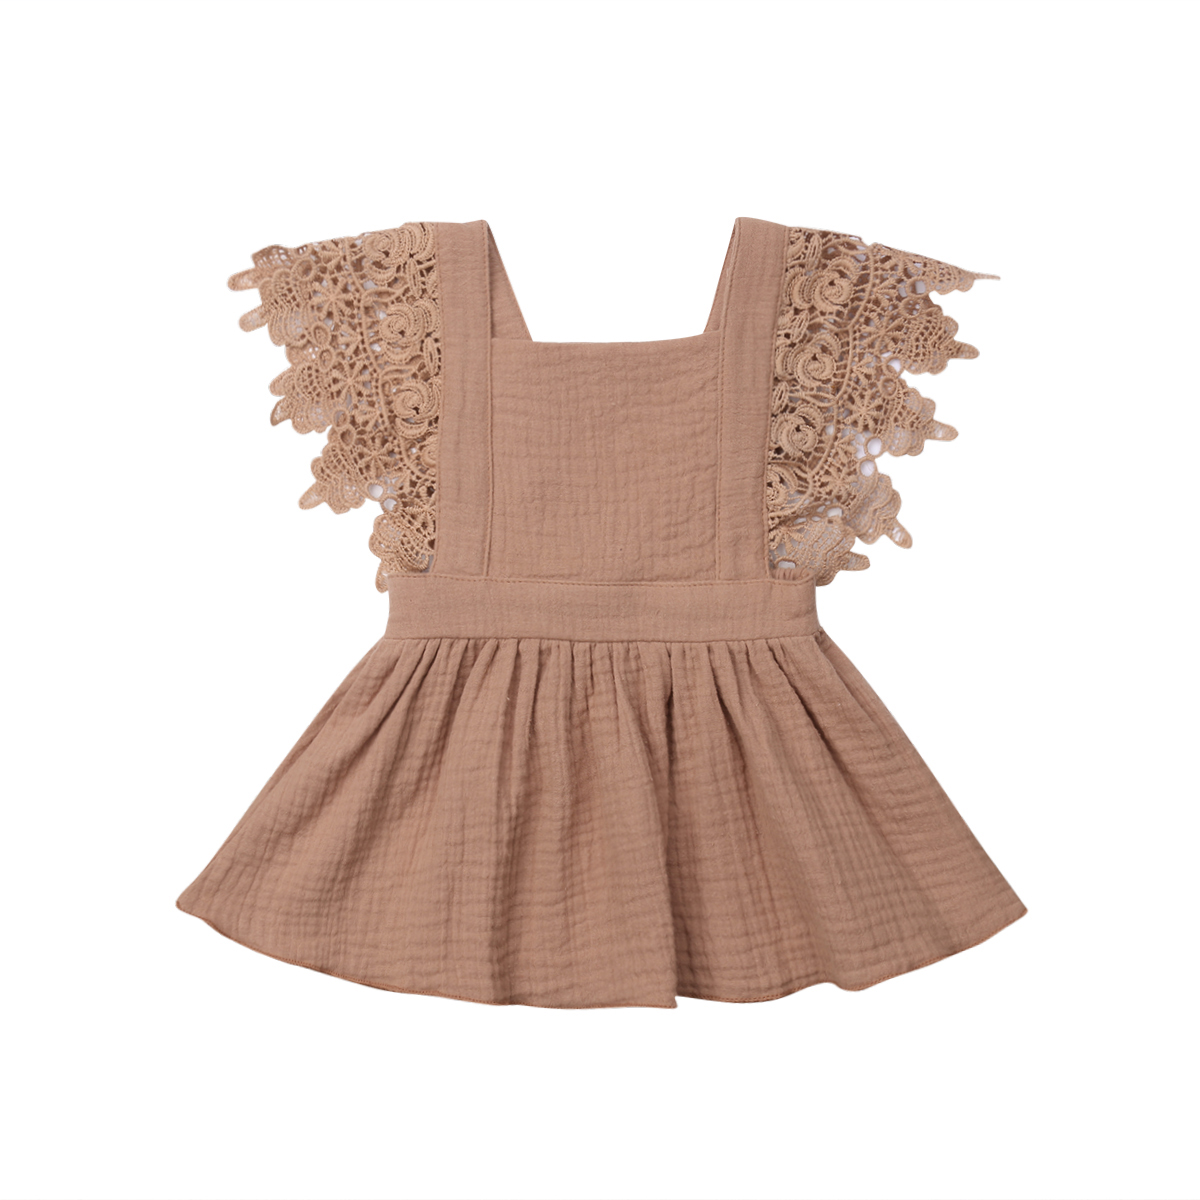 0 3 Months Toddler Baby Girl Cotton Linen Dress Lace Ruffle Tassel Sleeves Splice Backless Bandage Fashion Casual Summer Clothes in Dresses from Mother Kids